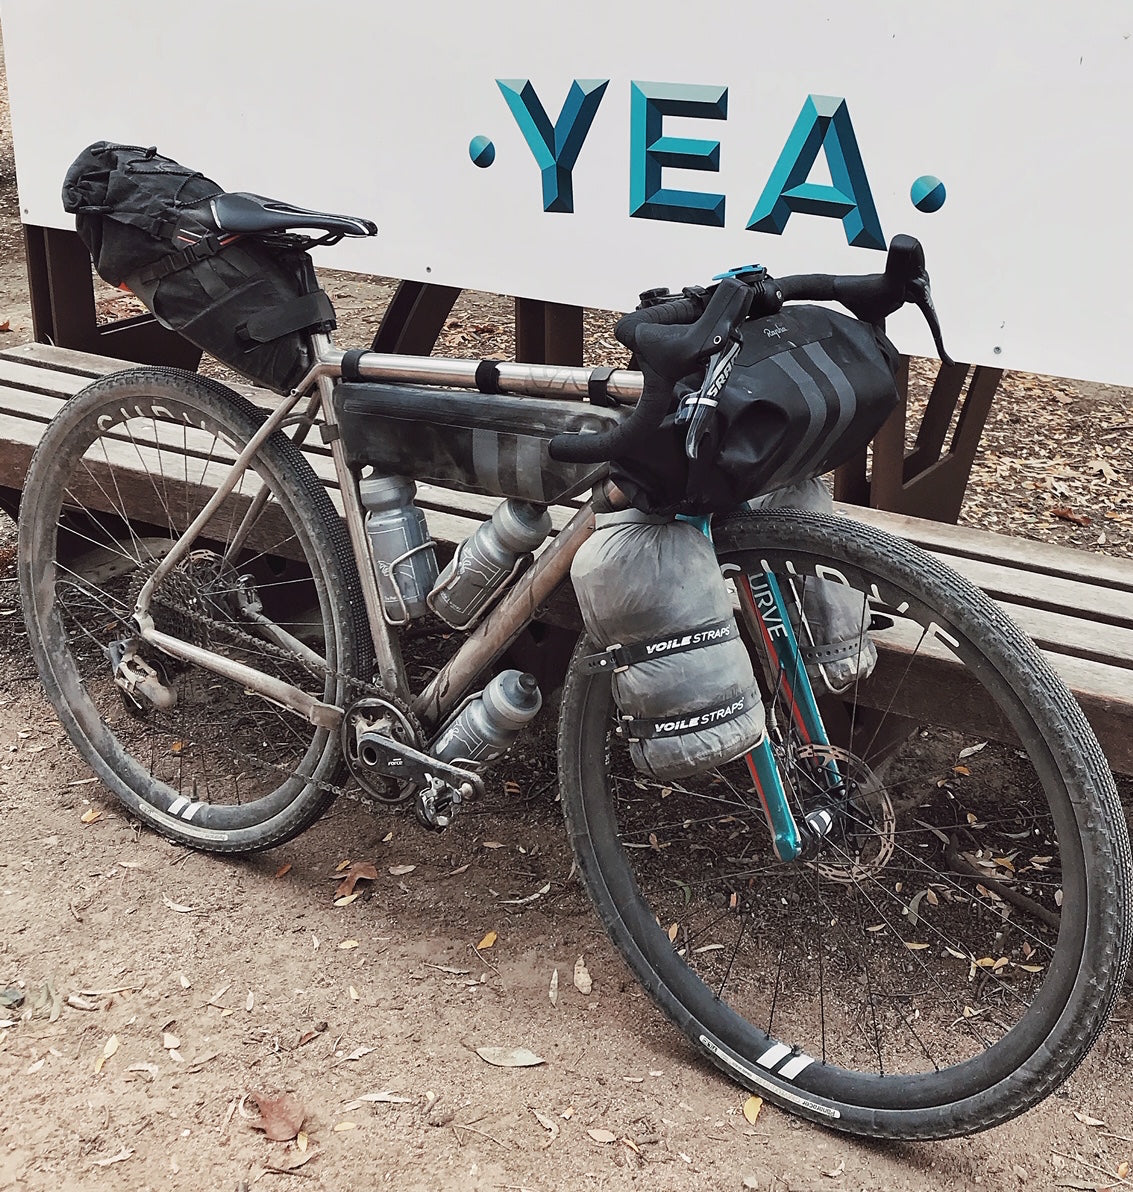 Bike-packing Fails: a self-depreciating account of learning the hard way by Kasper Voogt